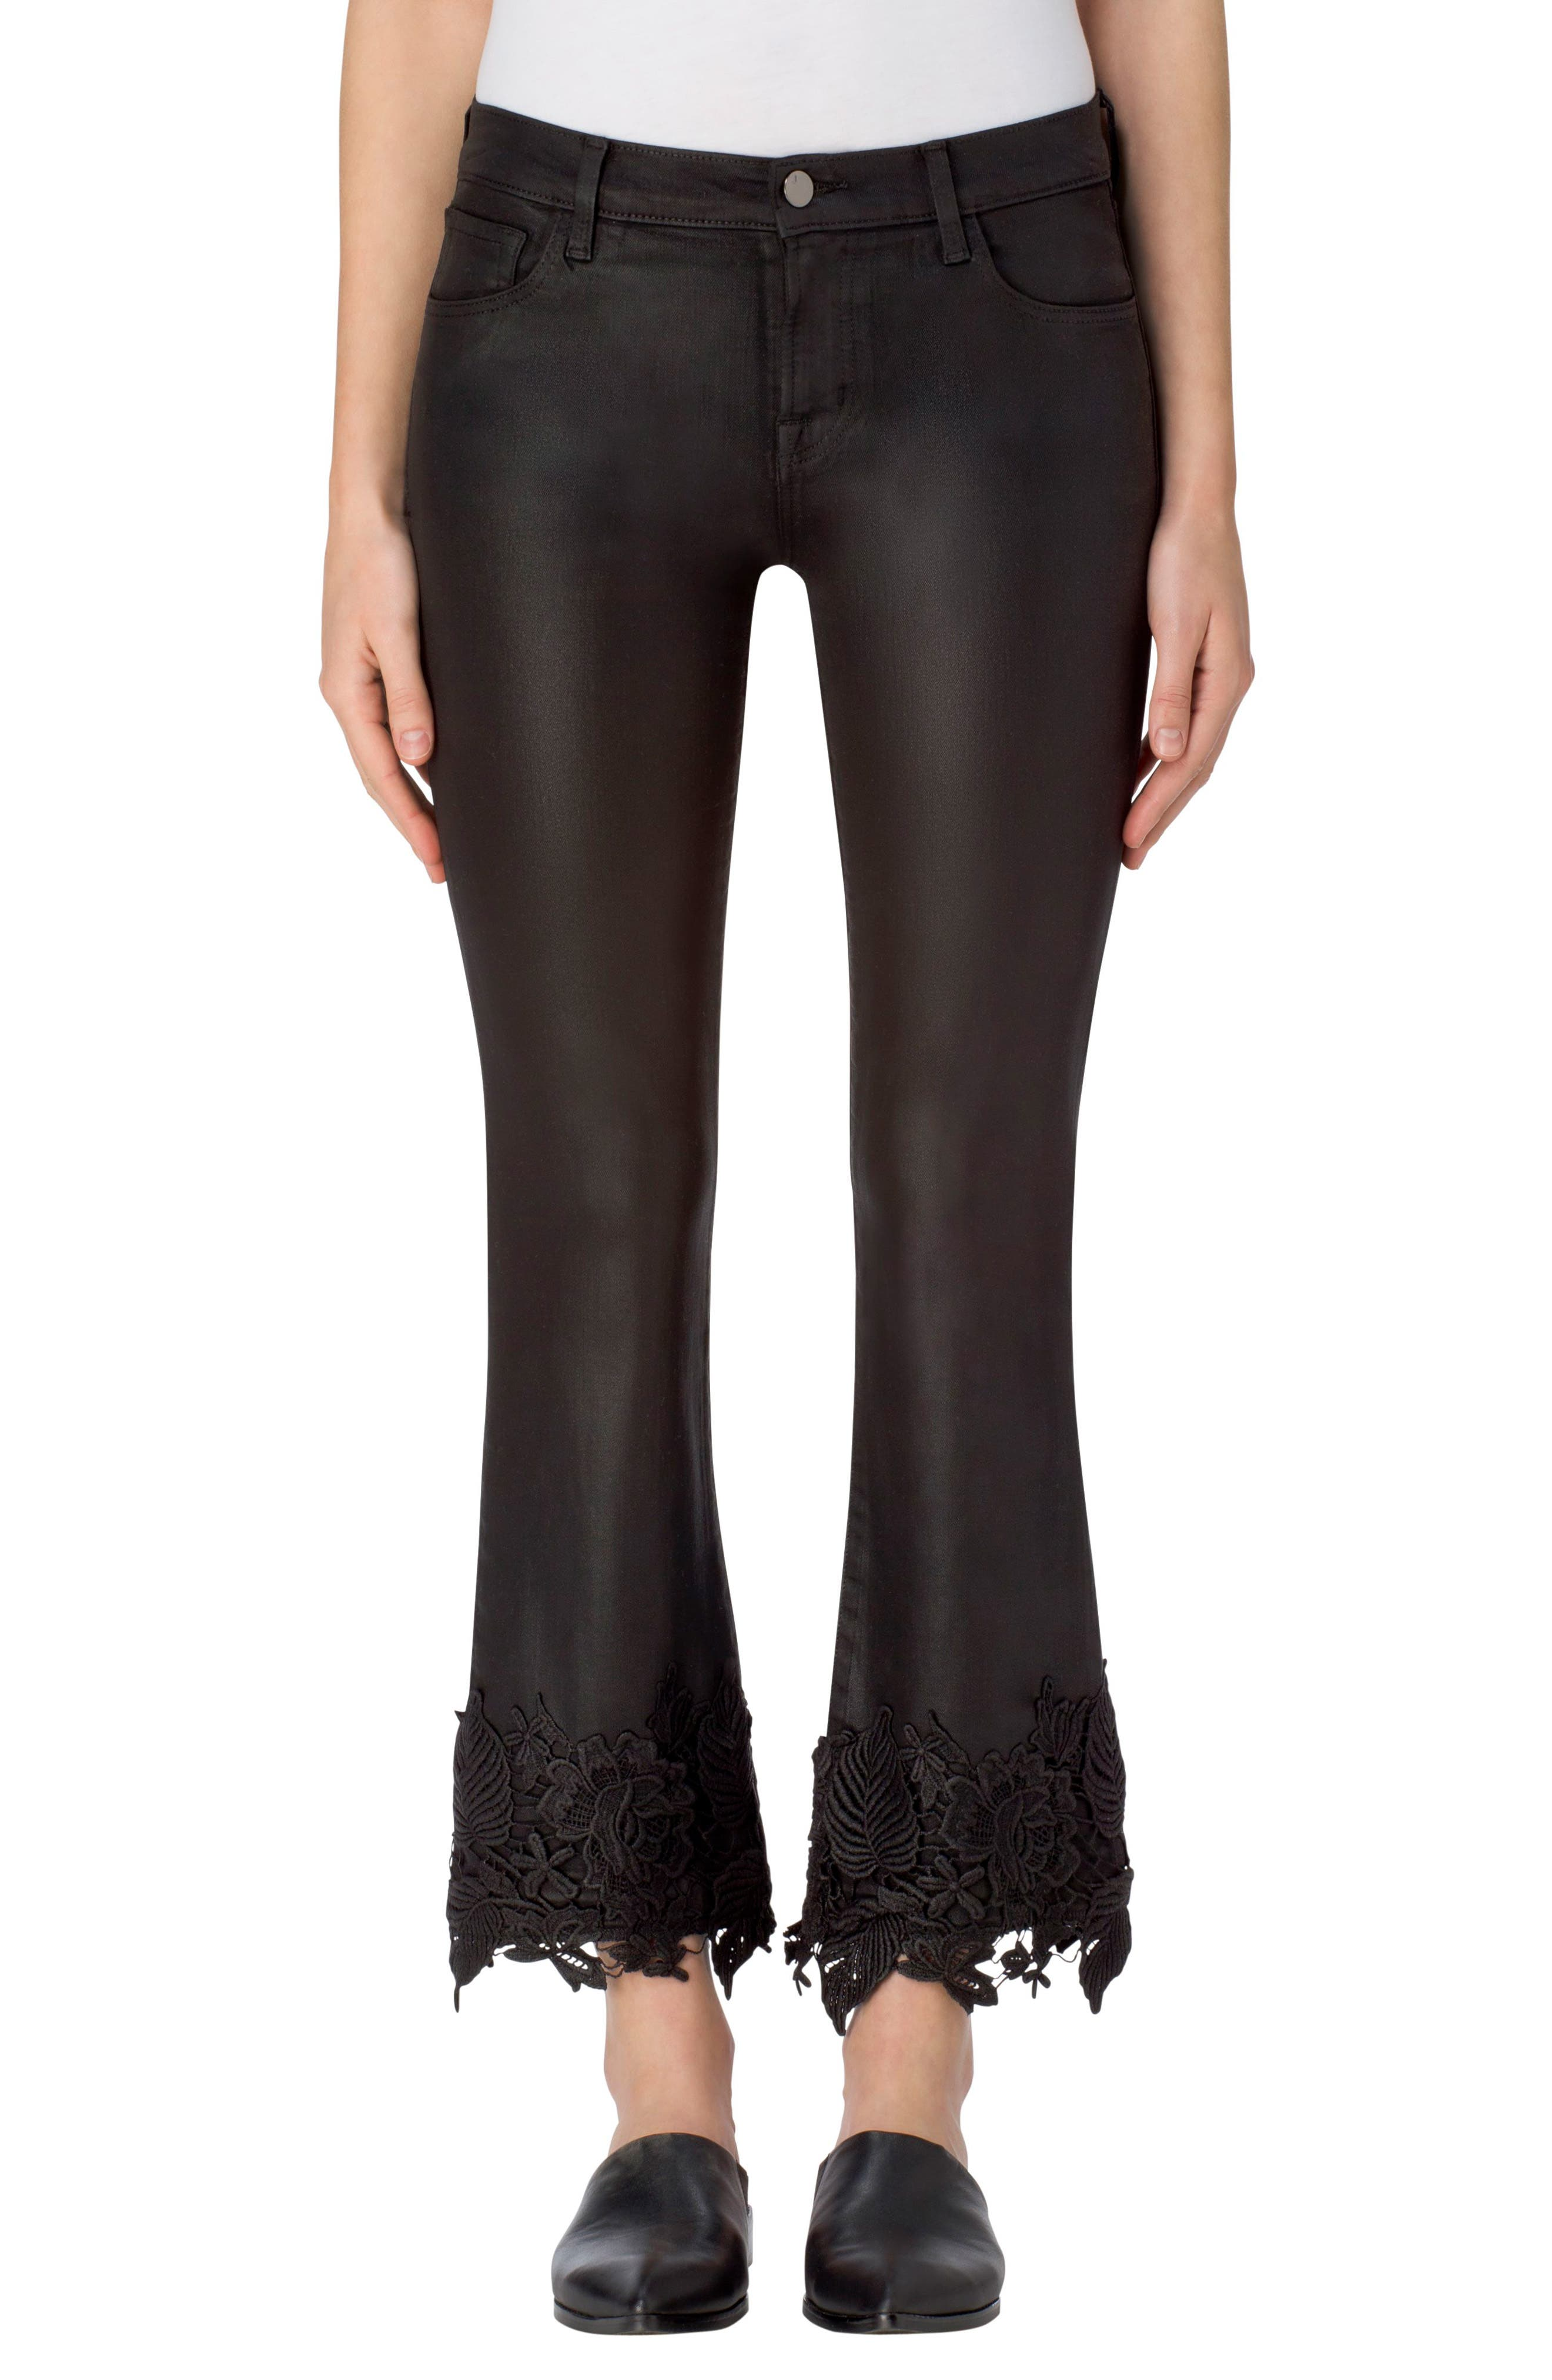 Alternate Image 1 Selected - J Brand Selena Crop Bootcut Jeans (Coated Black Lace)